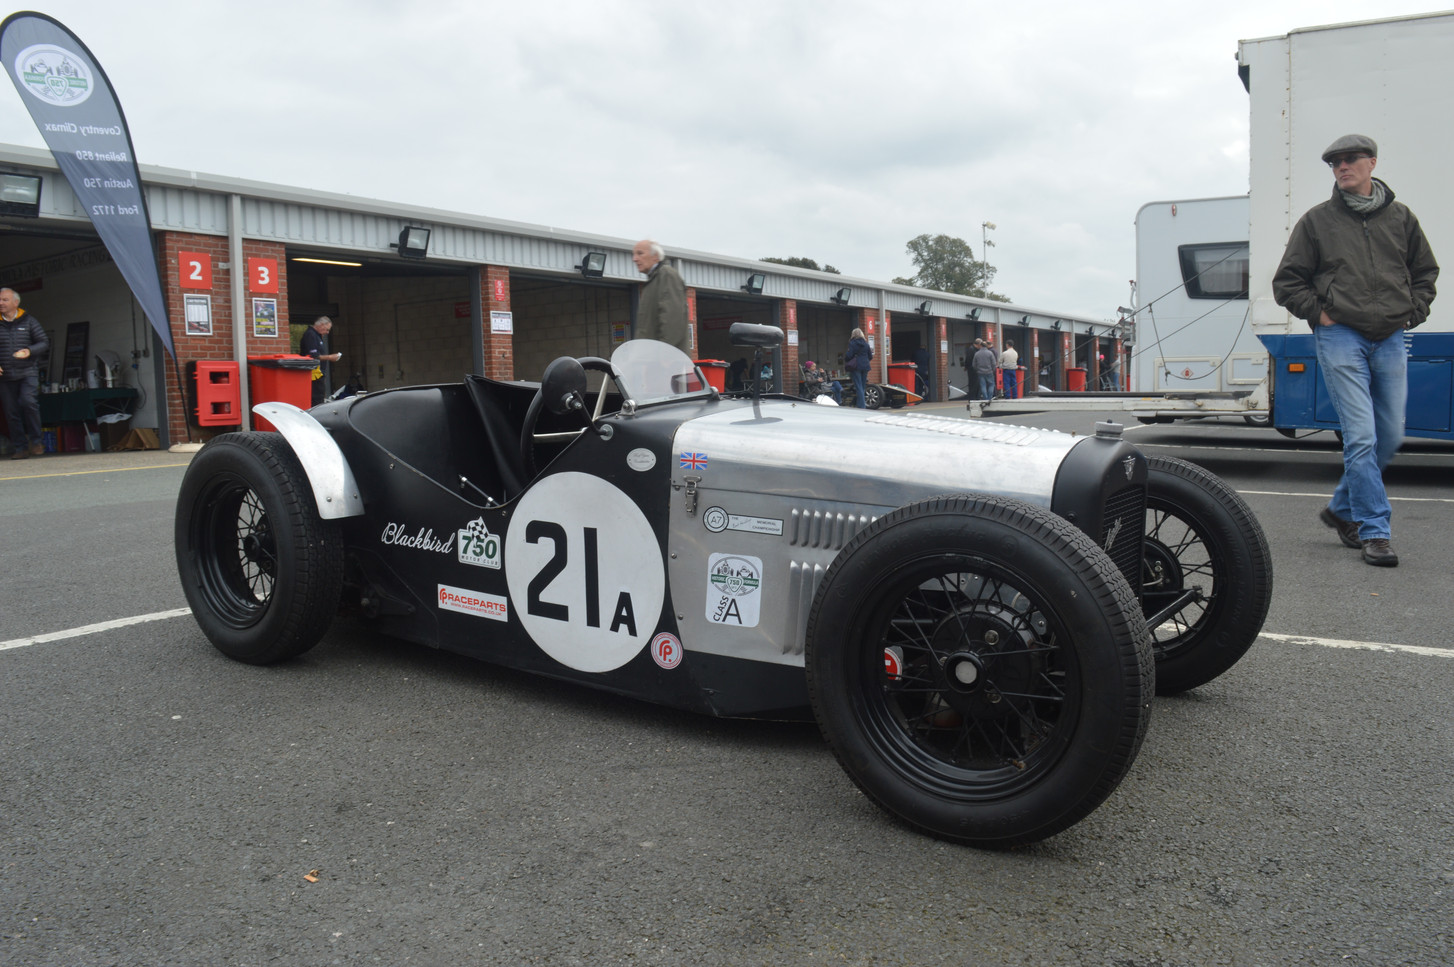 Supercharged Austin 7 Special (Blackbird) - Alistair Frayling-Cork